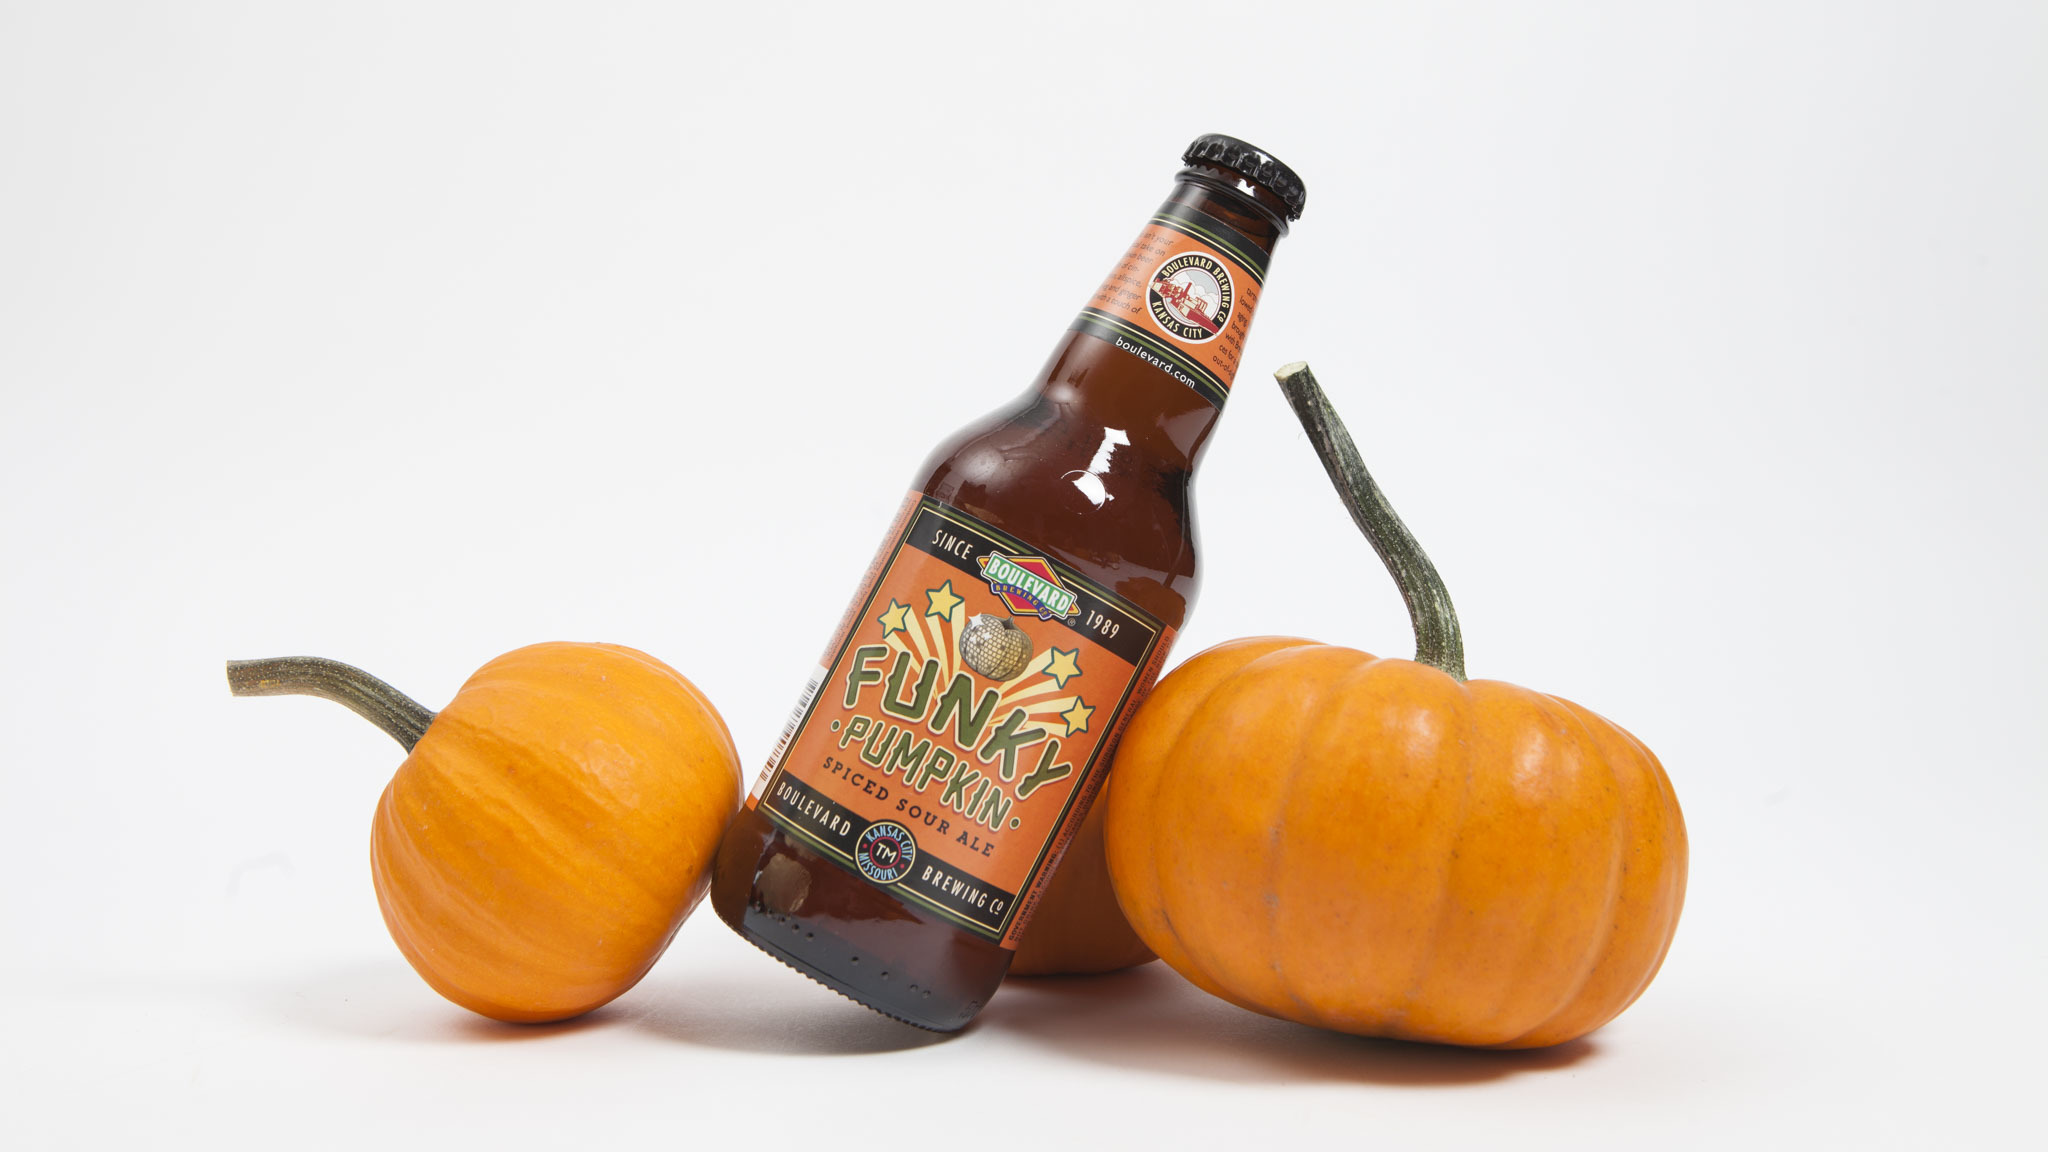 Boulevard Brewing Co. Funky Pumpkin Spiced Sour Ale